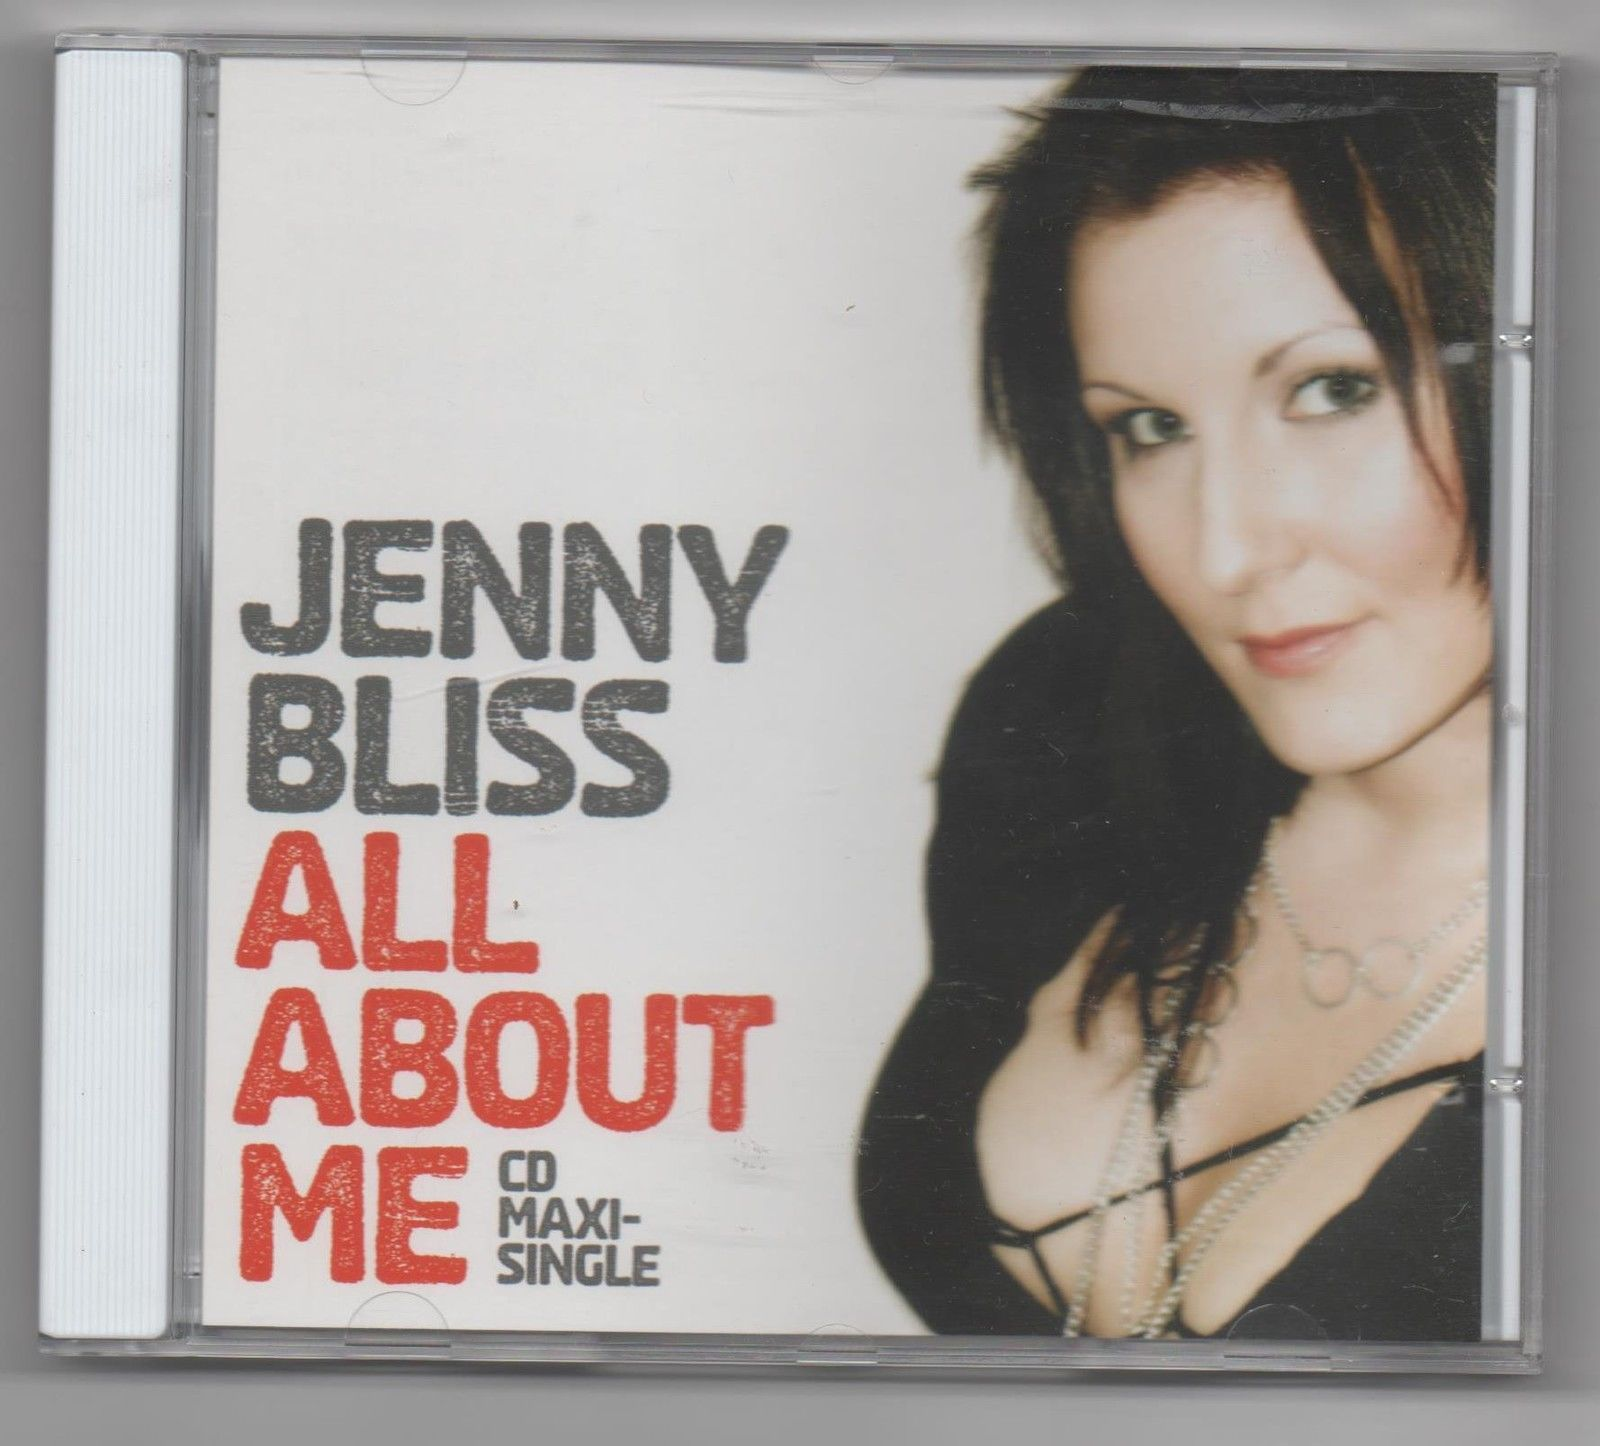 Primary image for Jenny Bliss All About Me 2008 Limited Edition Promo Remixes CD